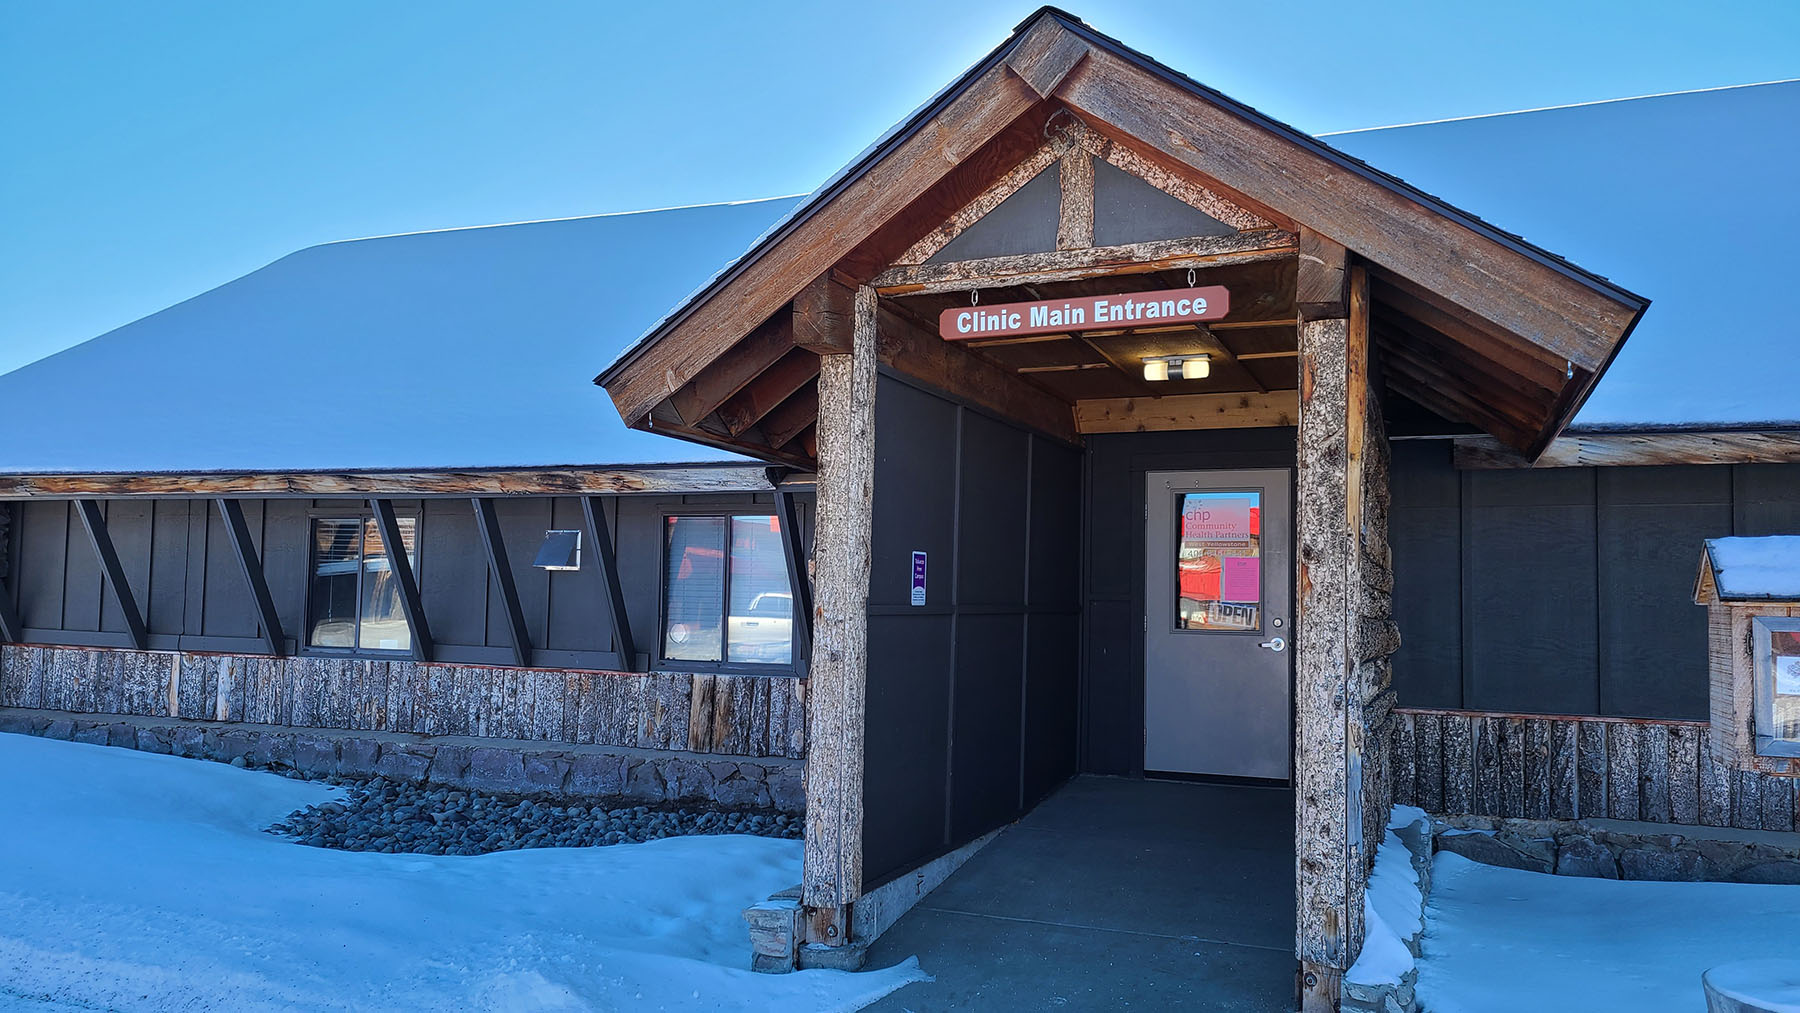 The Community Health Partners health center in West Yellowstone, Montana. The center sits on the border outside Yellowstone National Park. (Photo Courtesy of CHP)